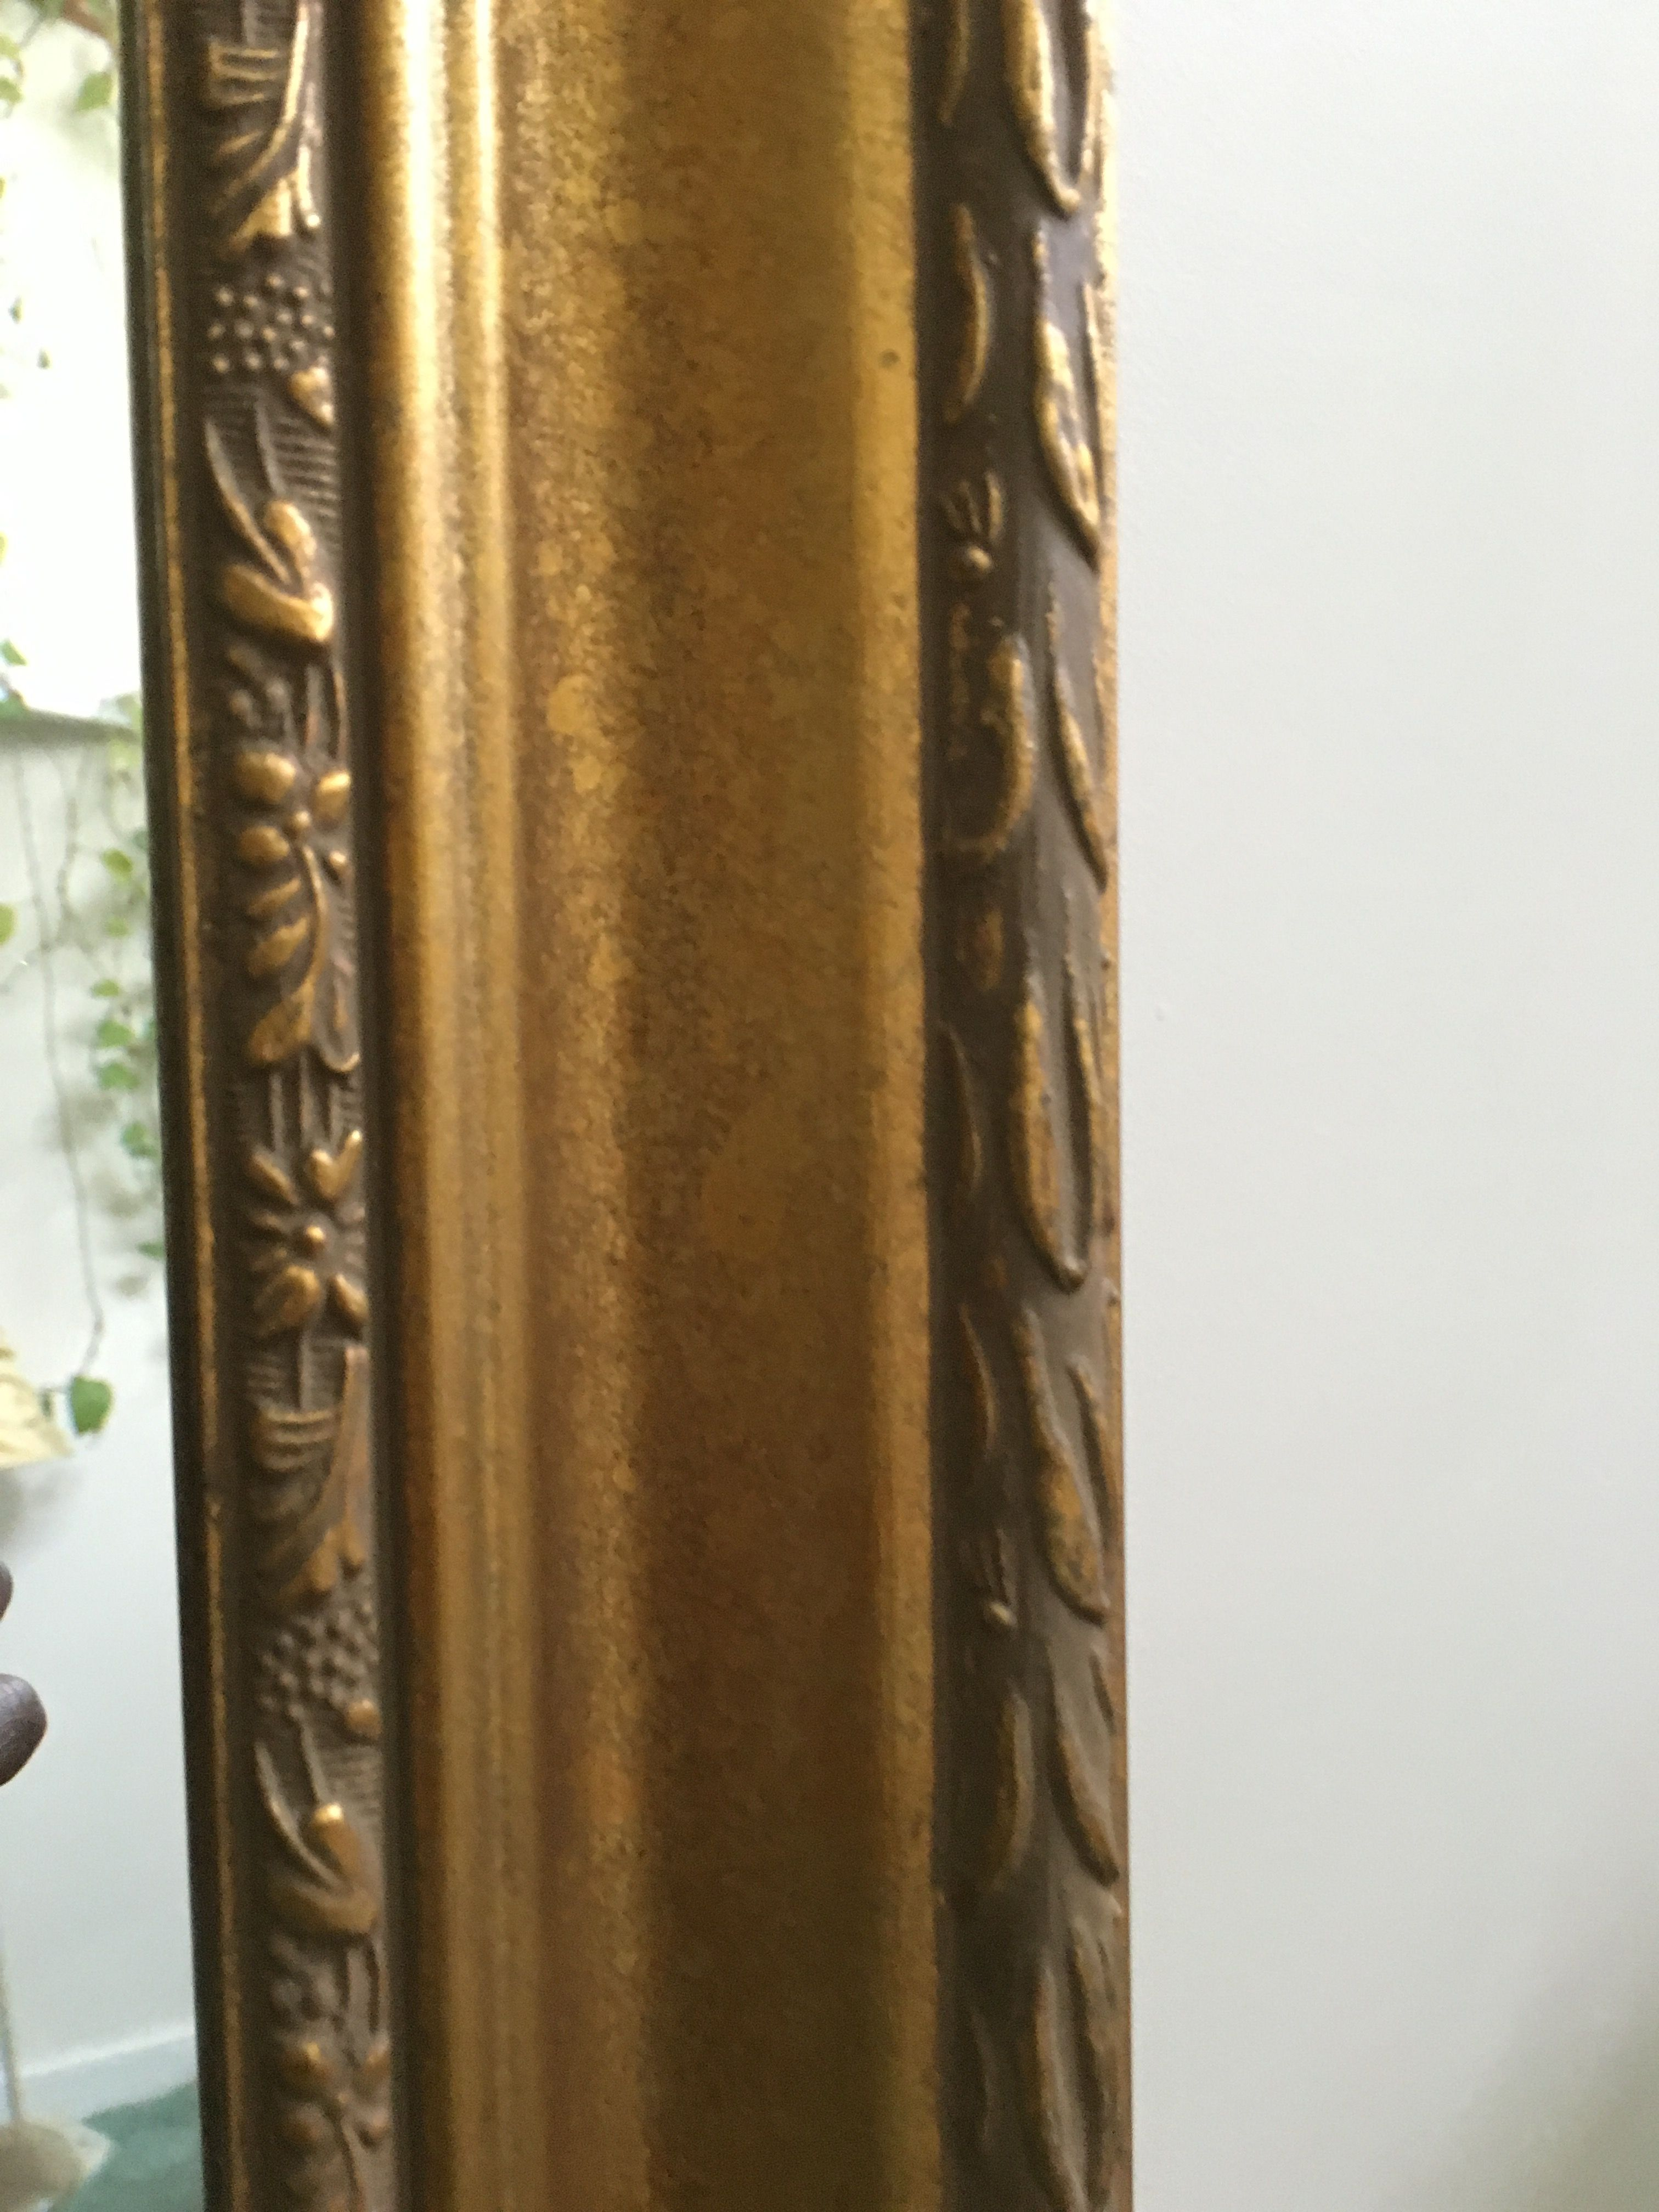 Detail photo of an antique gold mirror